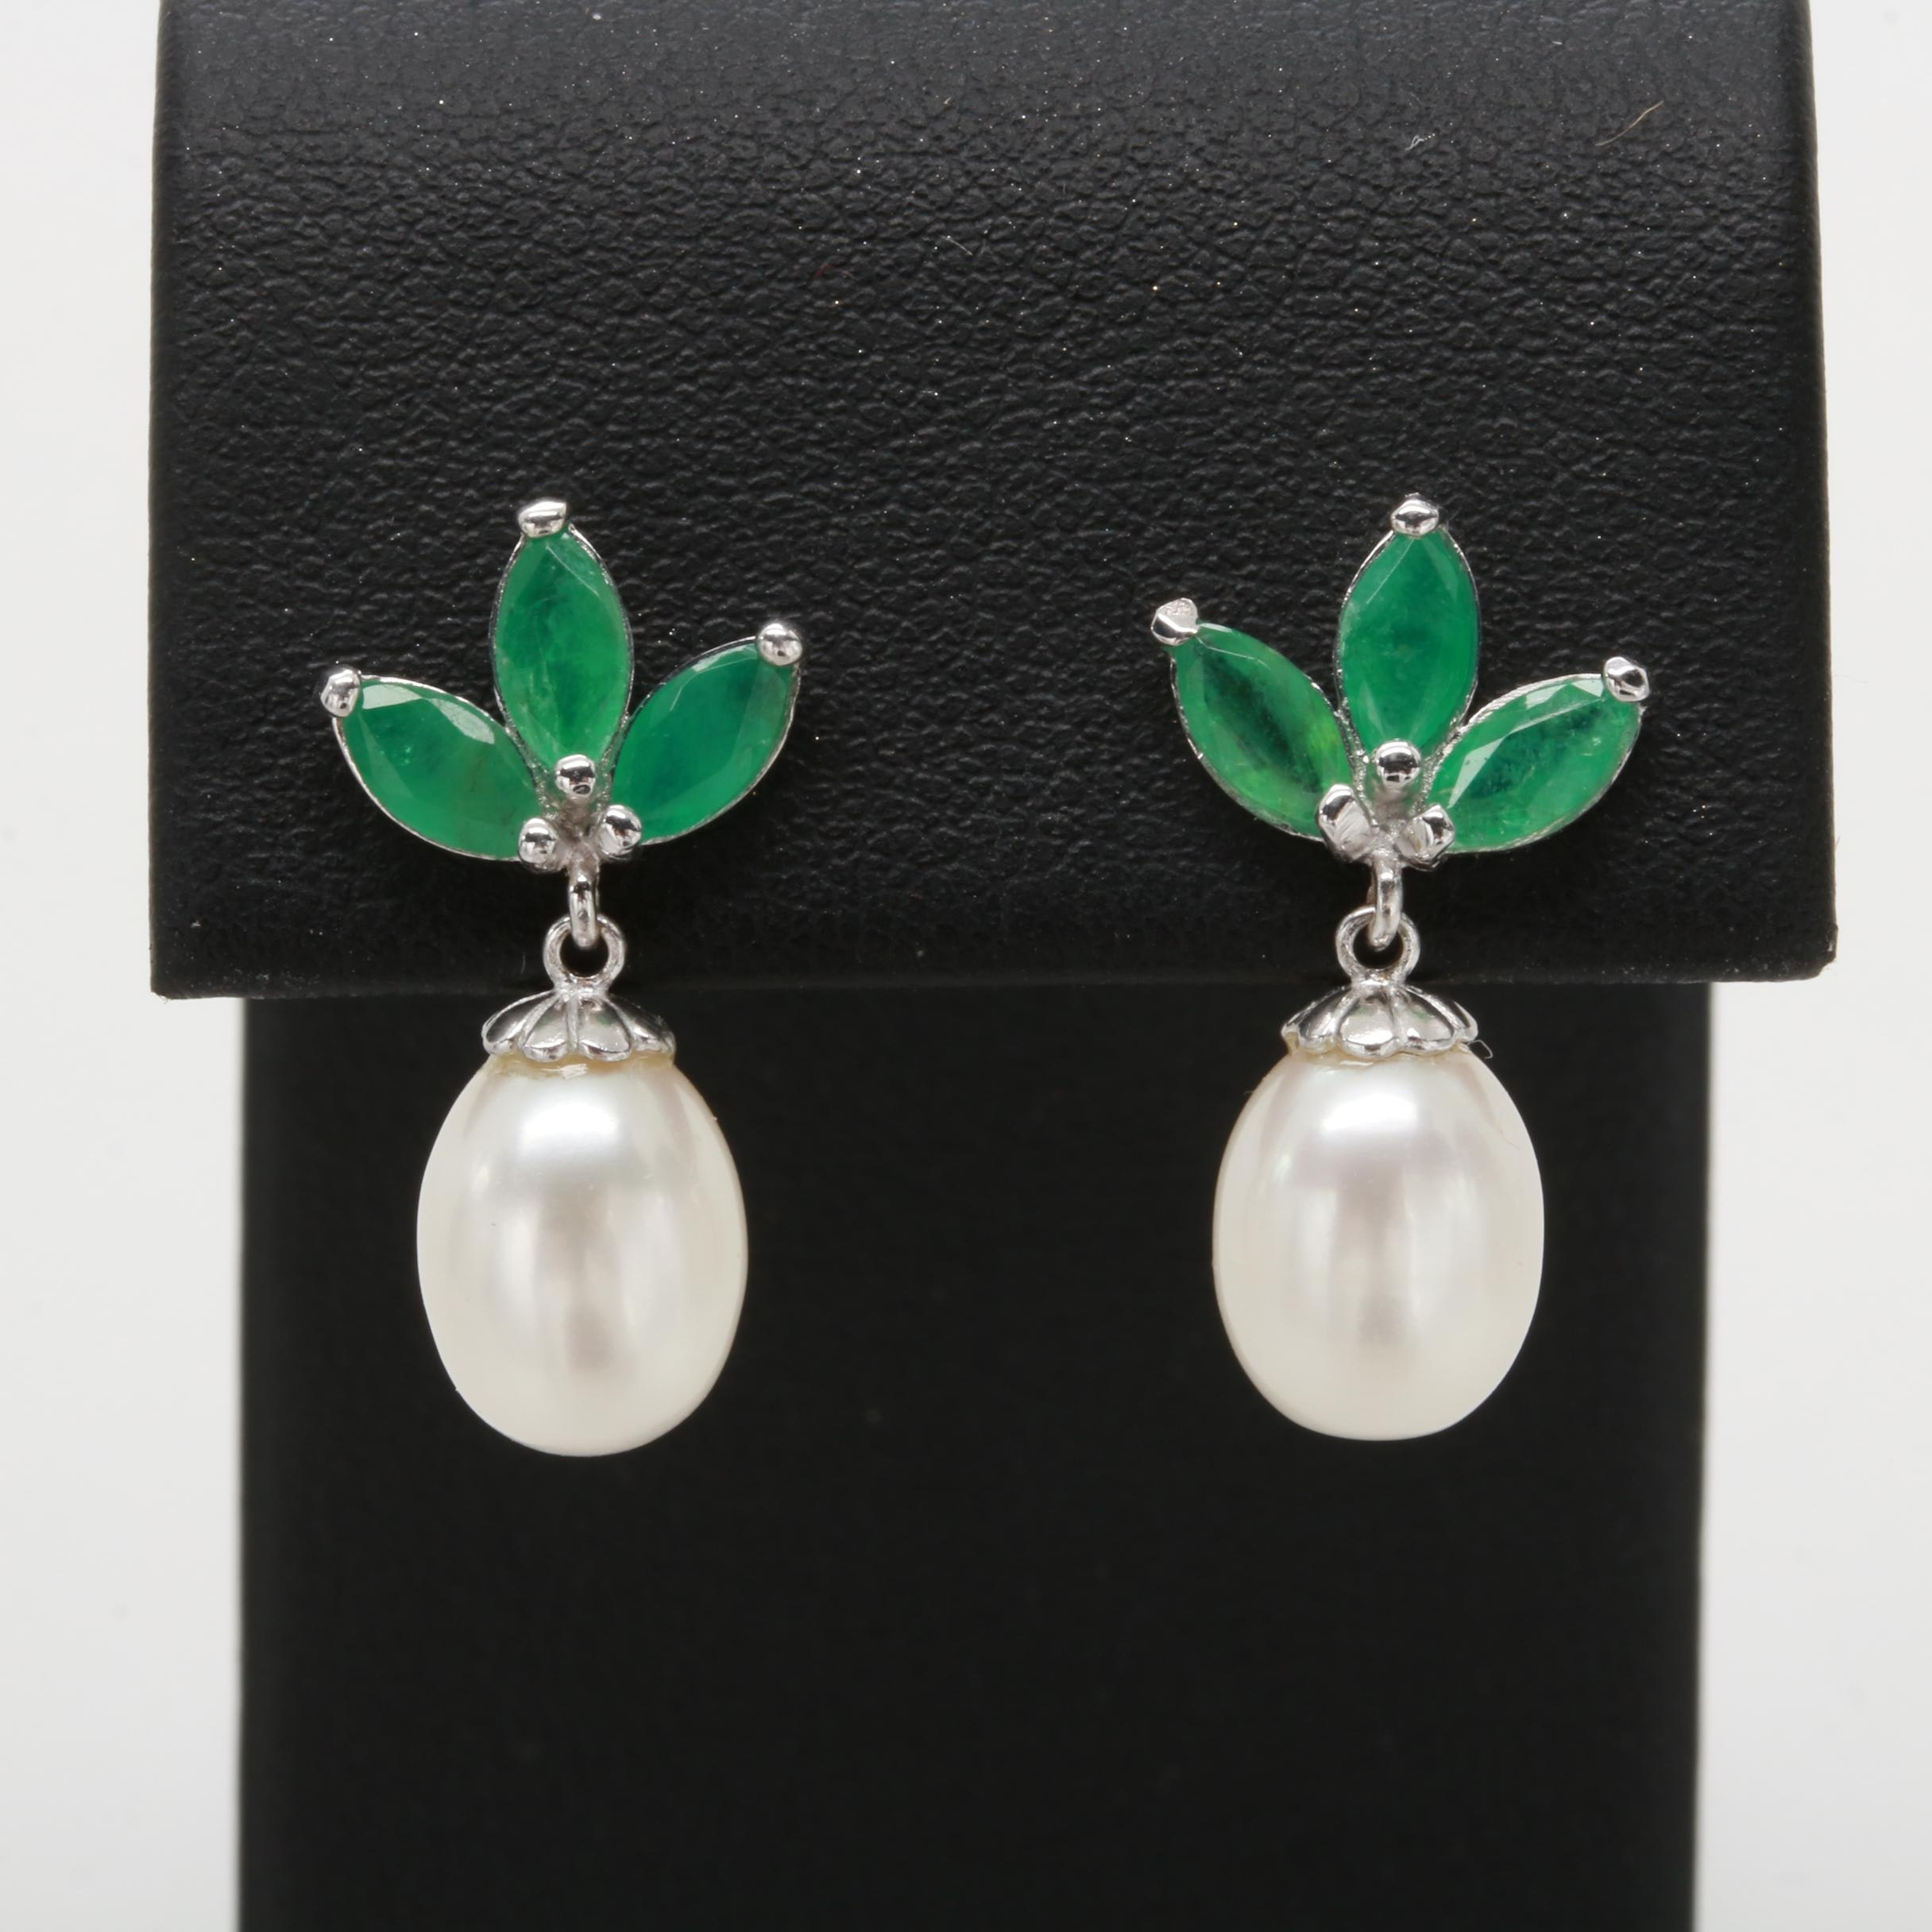 14K White Gold Emerald and Cultured Pearl Dangle Earrings